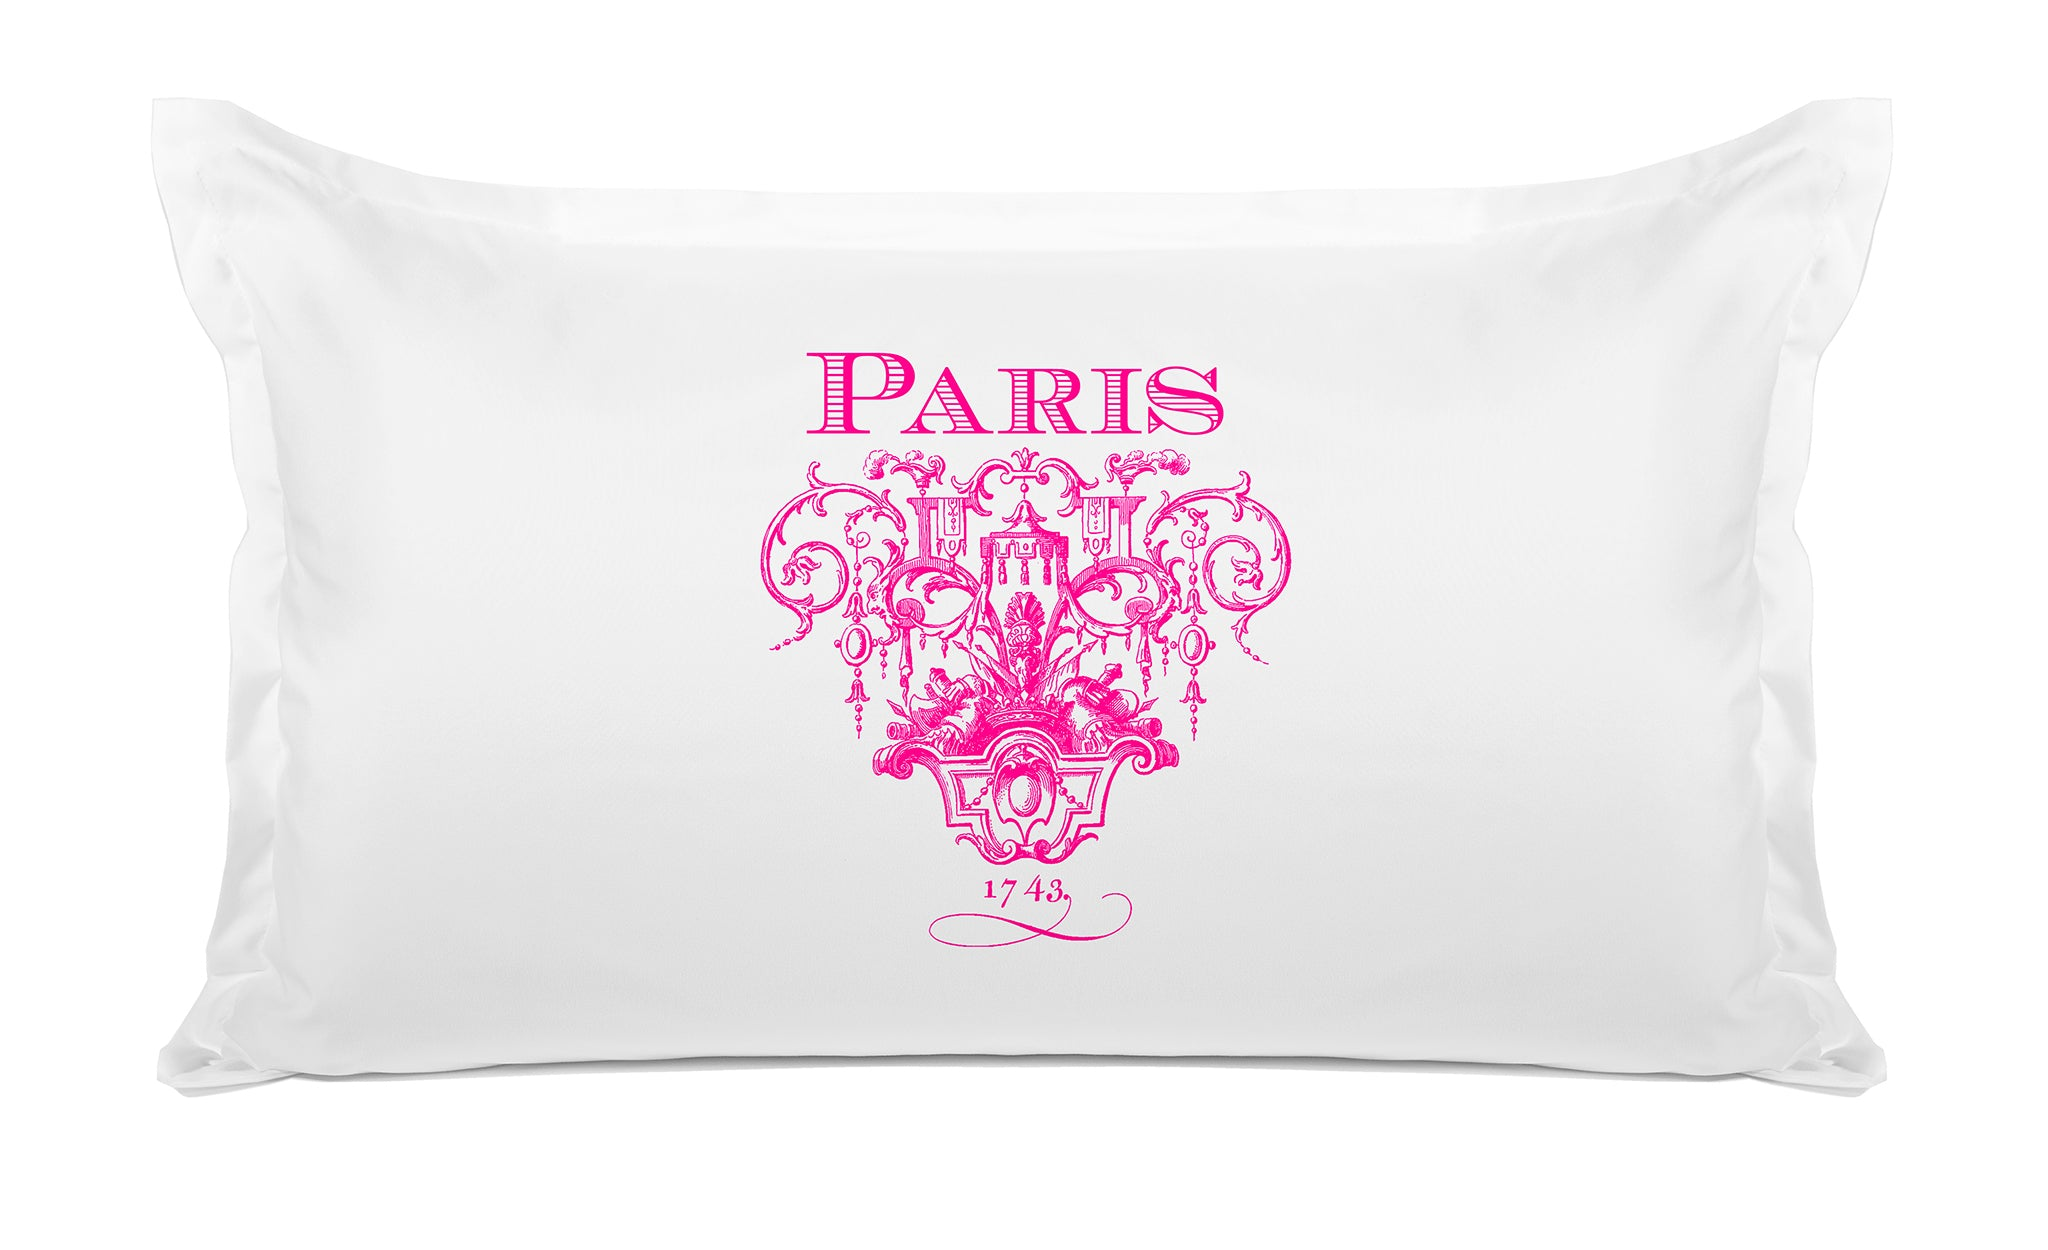 Paris 1743 - Vintage Designs Pillowcase Collection